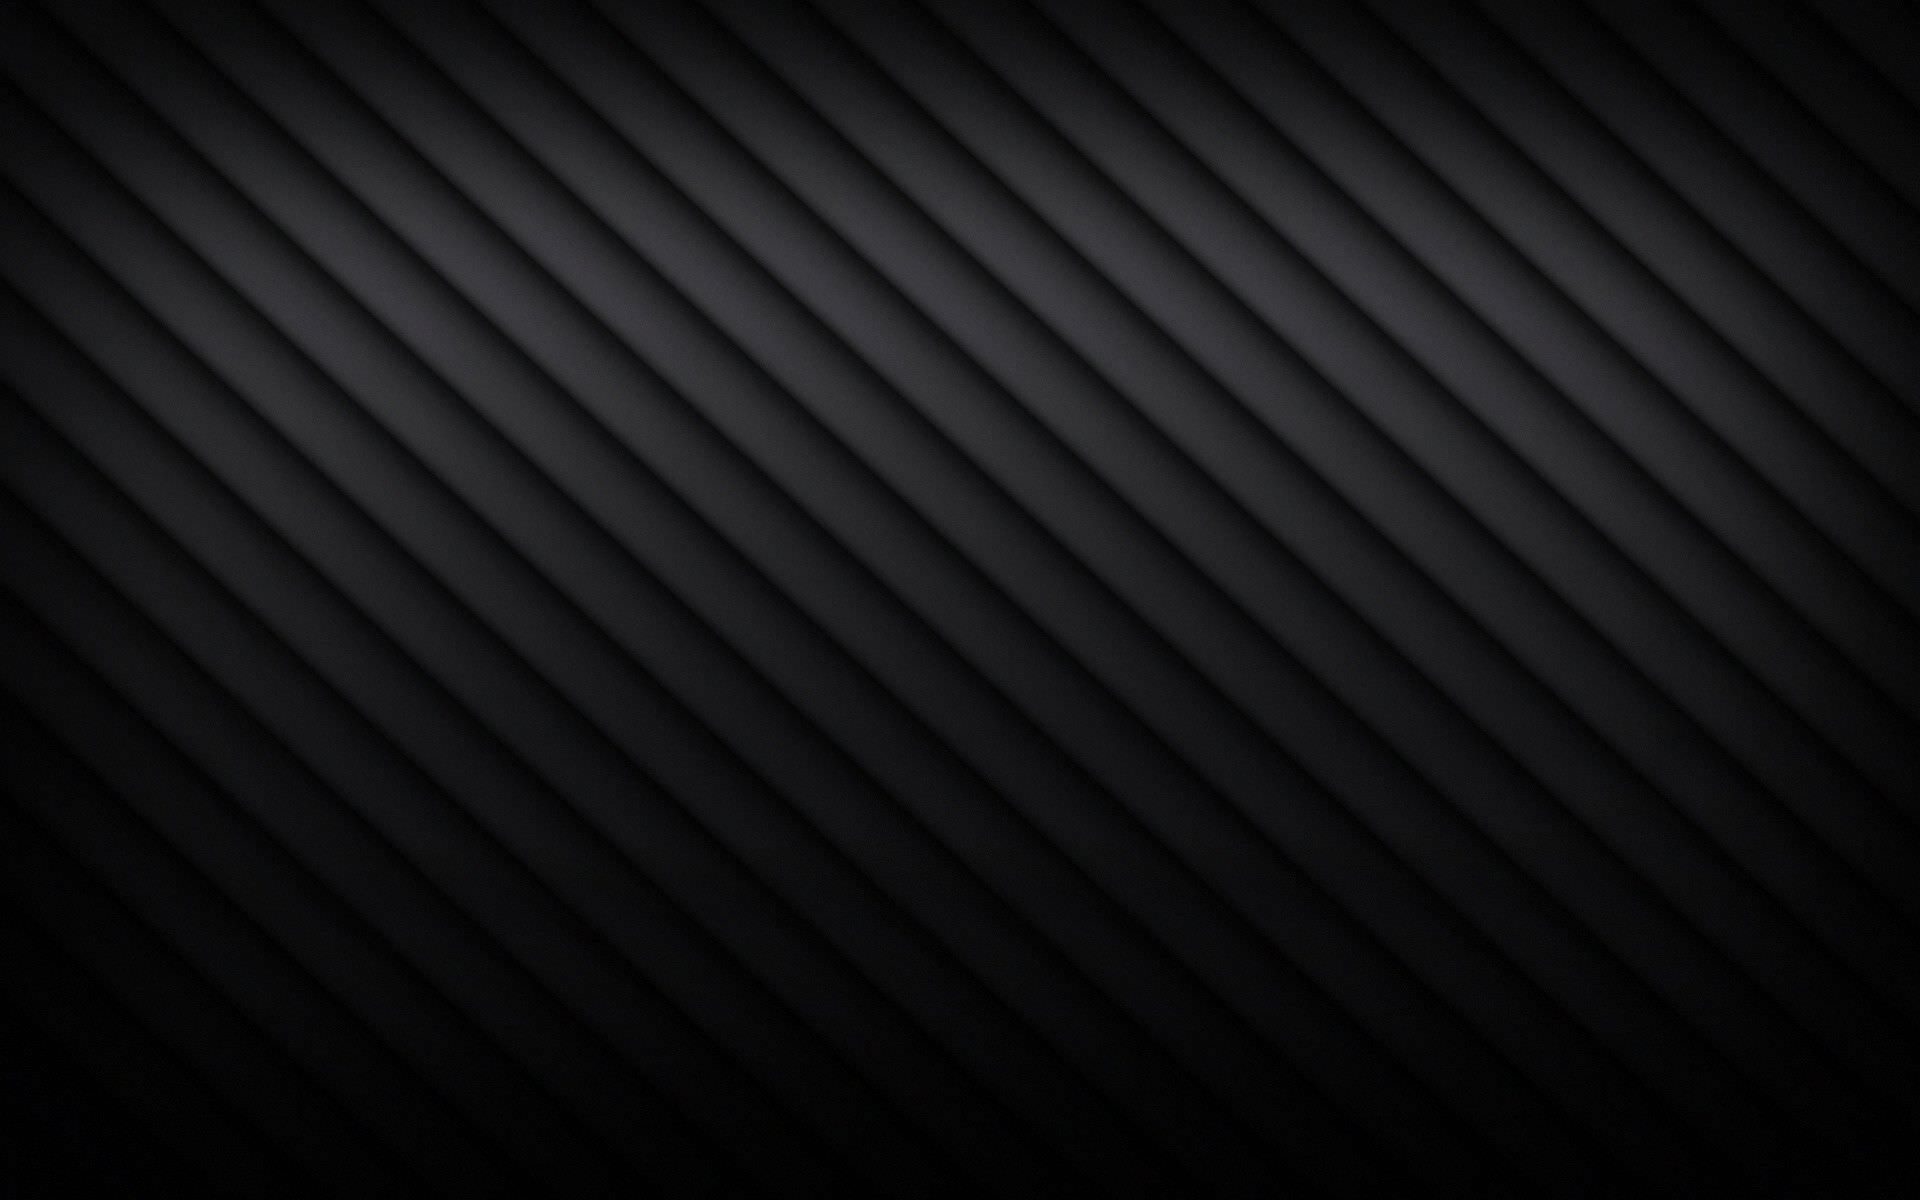 Black Abstract Lined Wallpaper